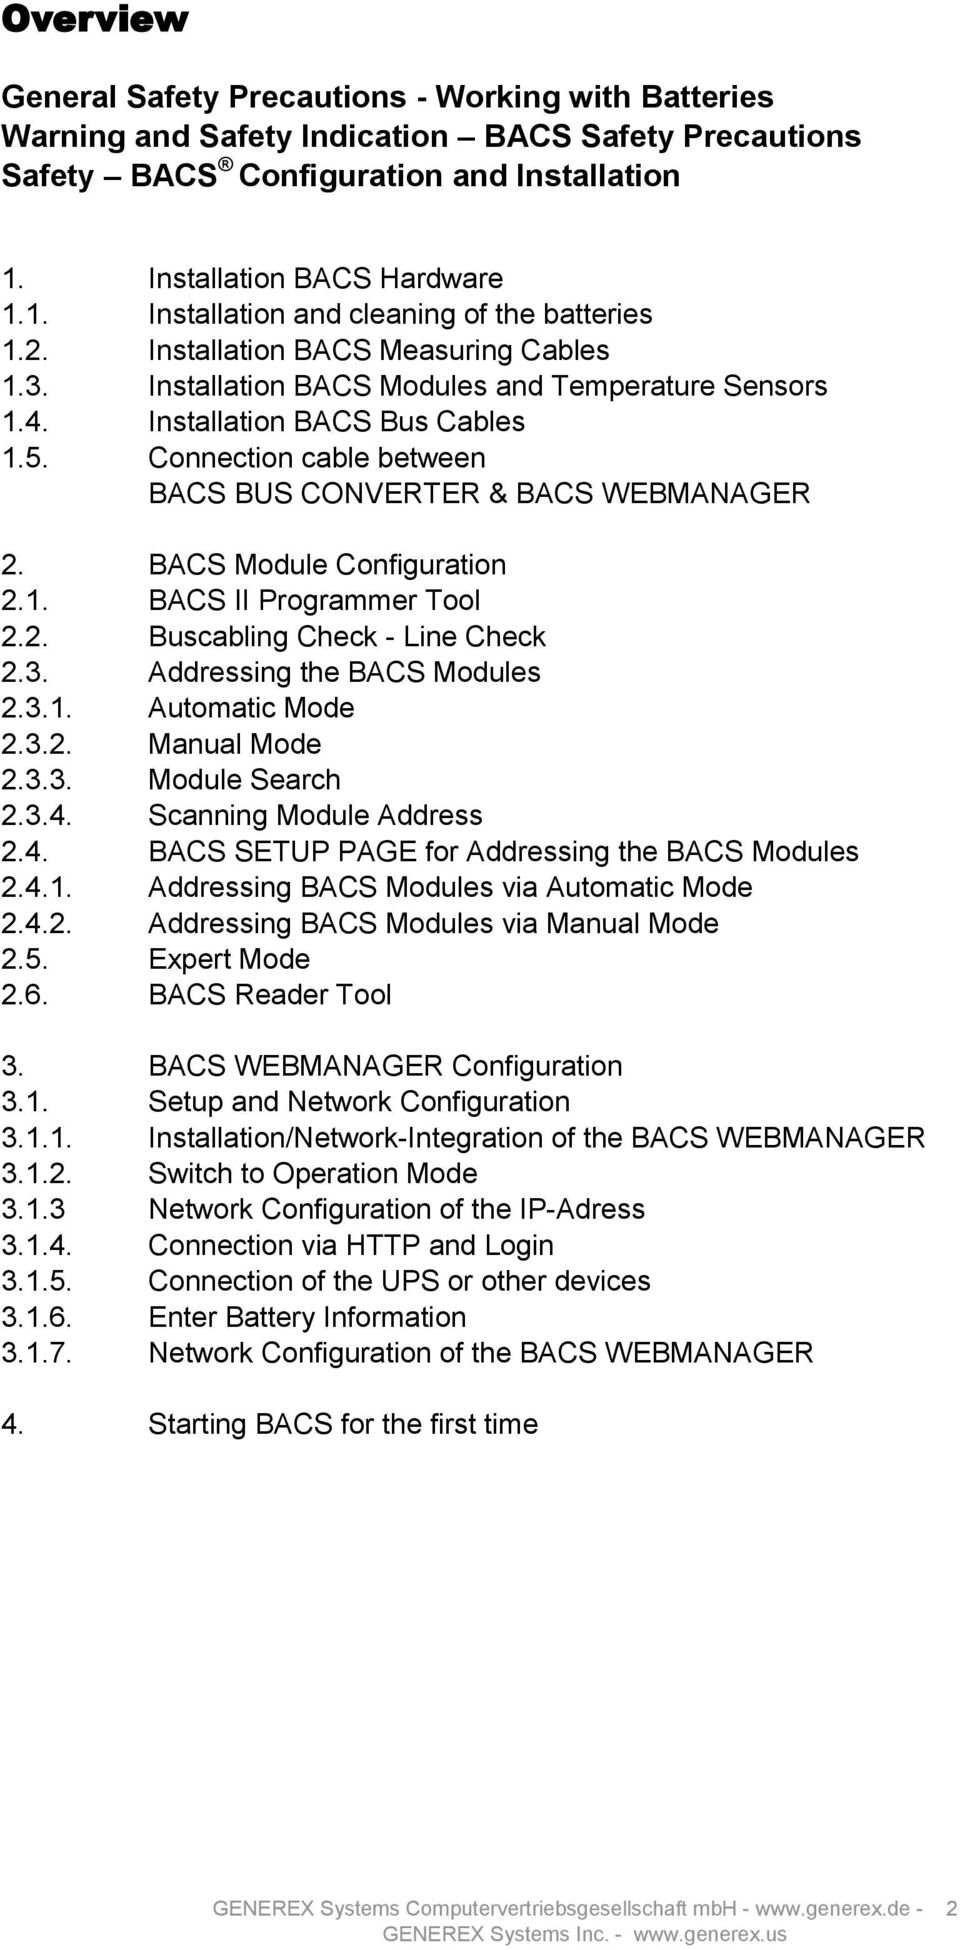 Installation BACS Bus Cables 1.5. Connection cable between BACS BUS CONVERTER & BACS WEBMANAGER 2. BACS Module Configuration 2.1. BACS II Programmer Tool 2.2. Buscabling Check - Line Check 2.3.